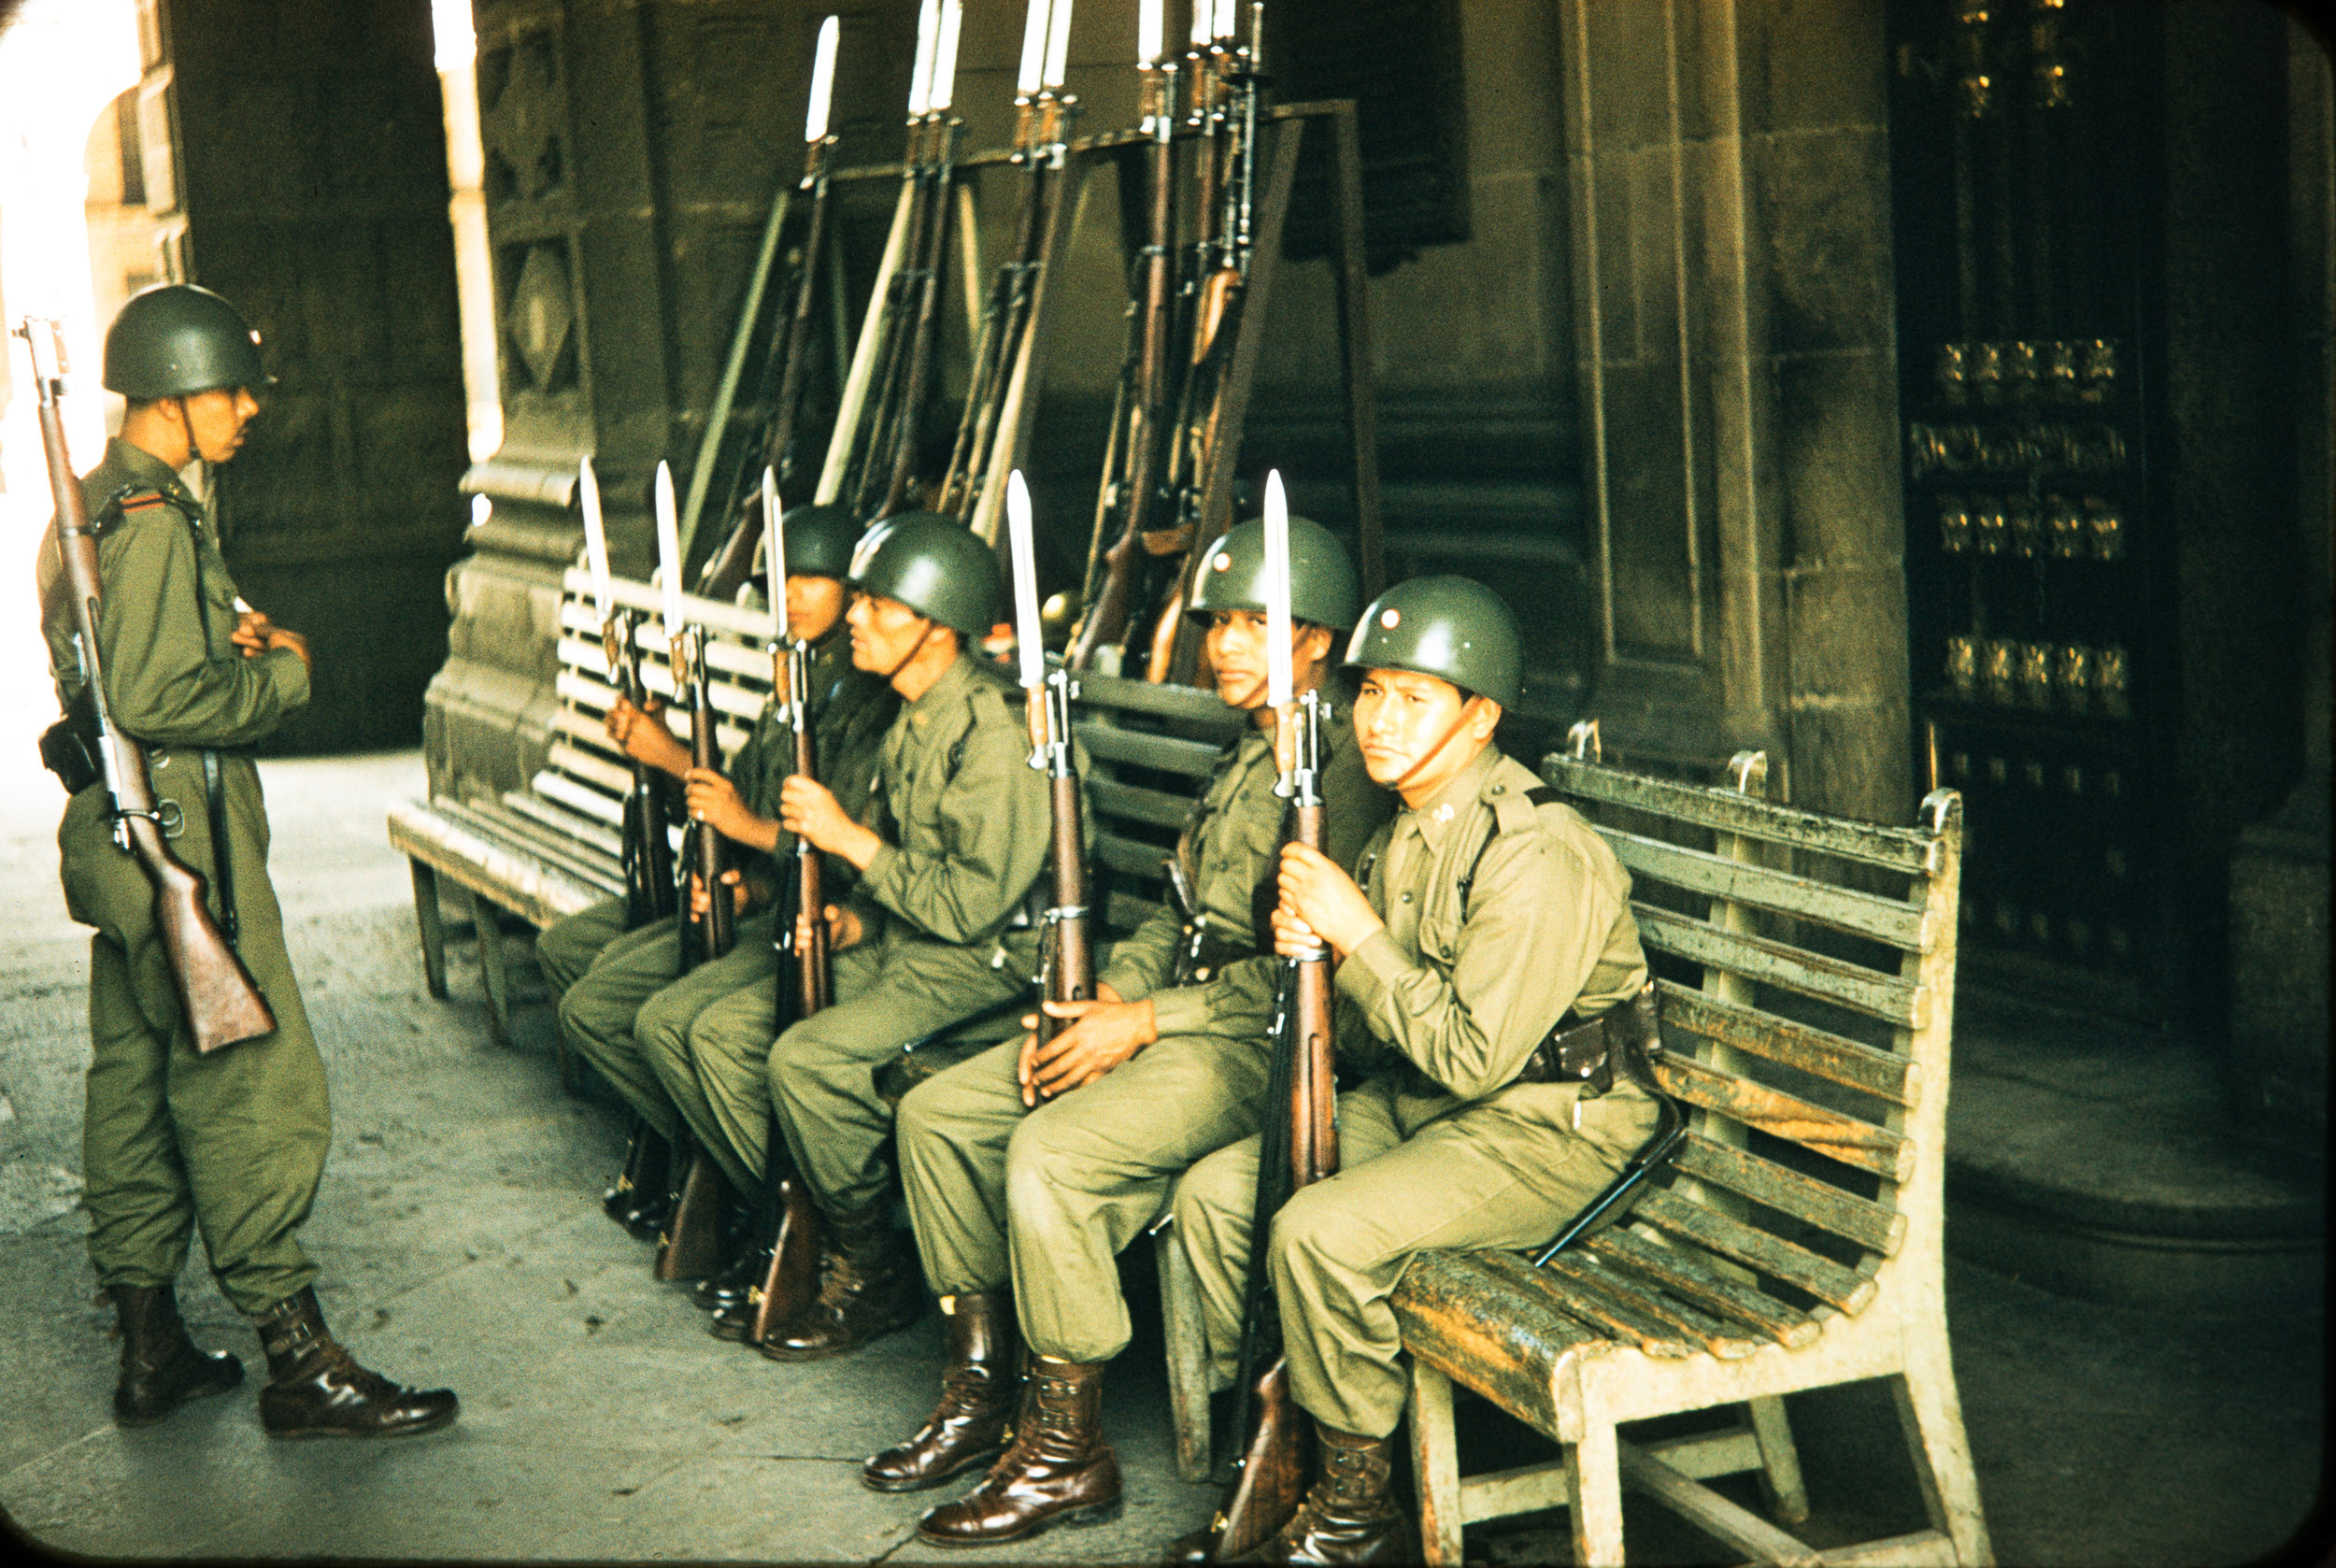 Seated officials with guns, Mexico, 1957